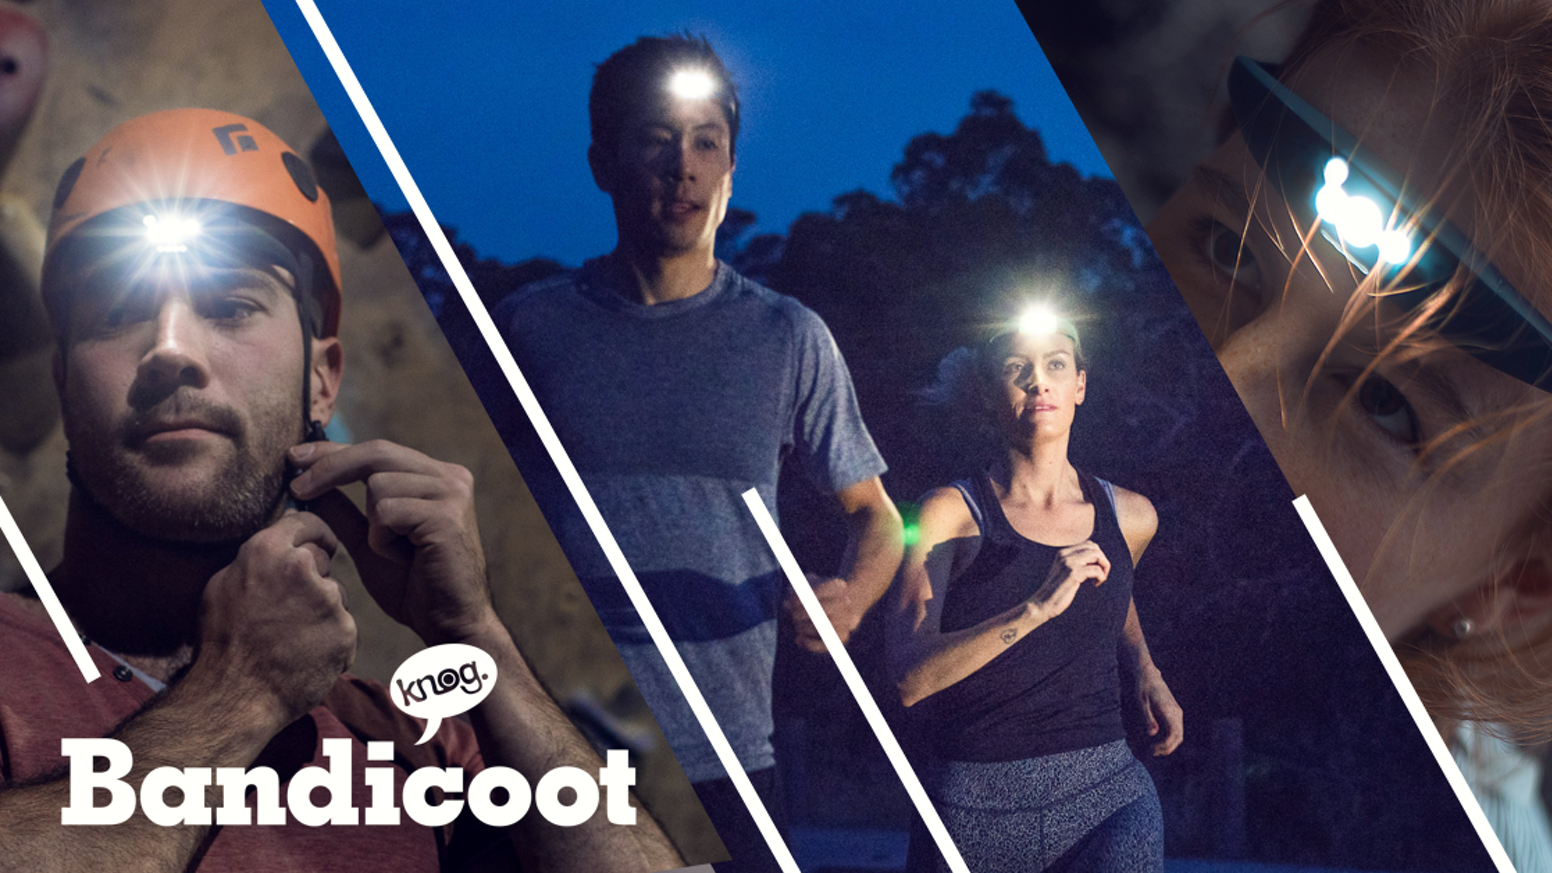 The Bandicoot Headlamp is the top crowdfunding project launched today. The Bandicoot Headlamp raised over $317458 from 5589 backers. Other top projects include A versatile magnetic clip with 22 features | Penclip Type-B, MFB 5.0 / 5-IN-1 MULTIPURPOSE FAMILY BACKPACK, Fear Pong: The Game...